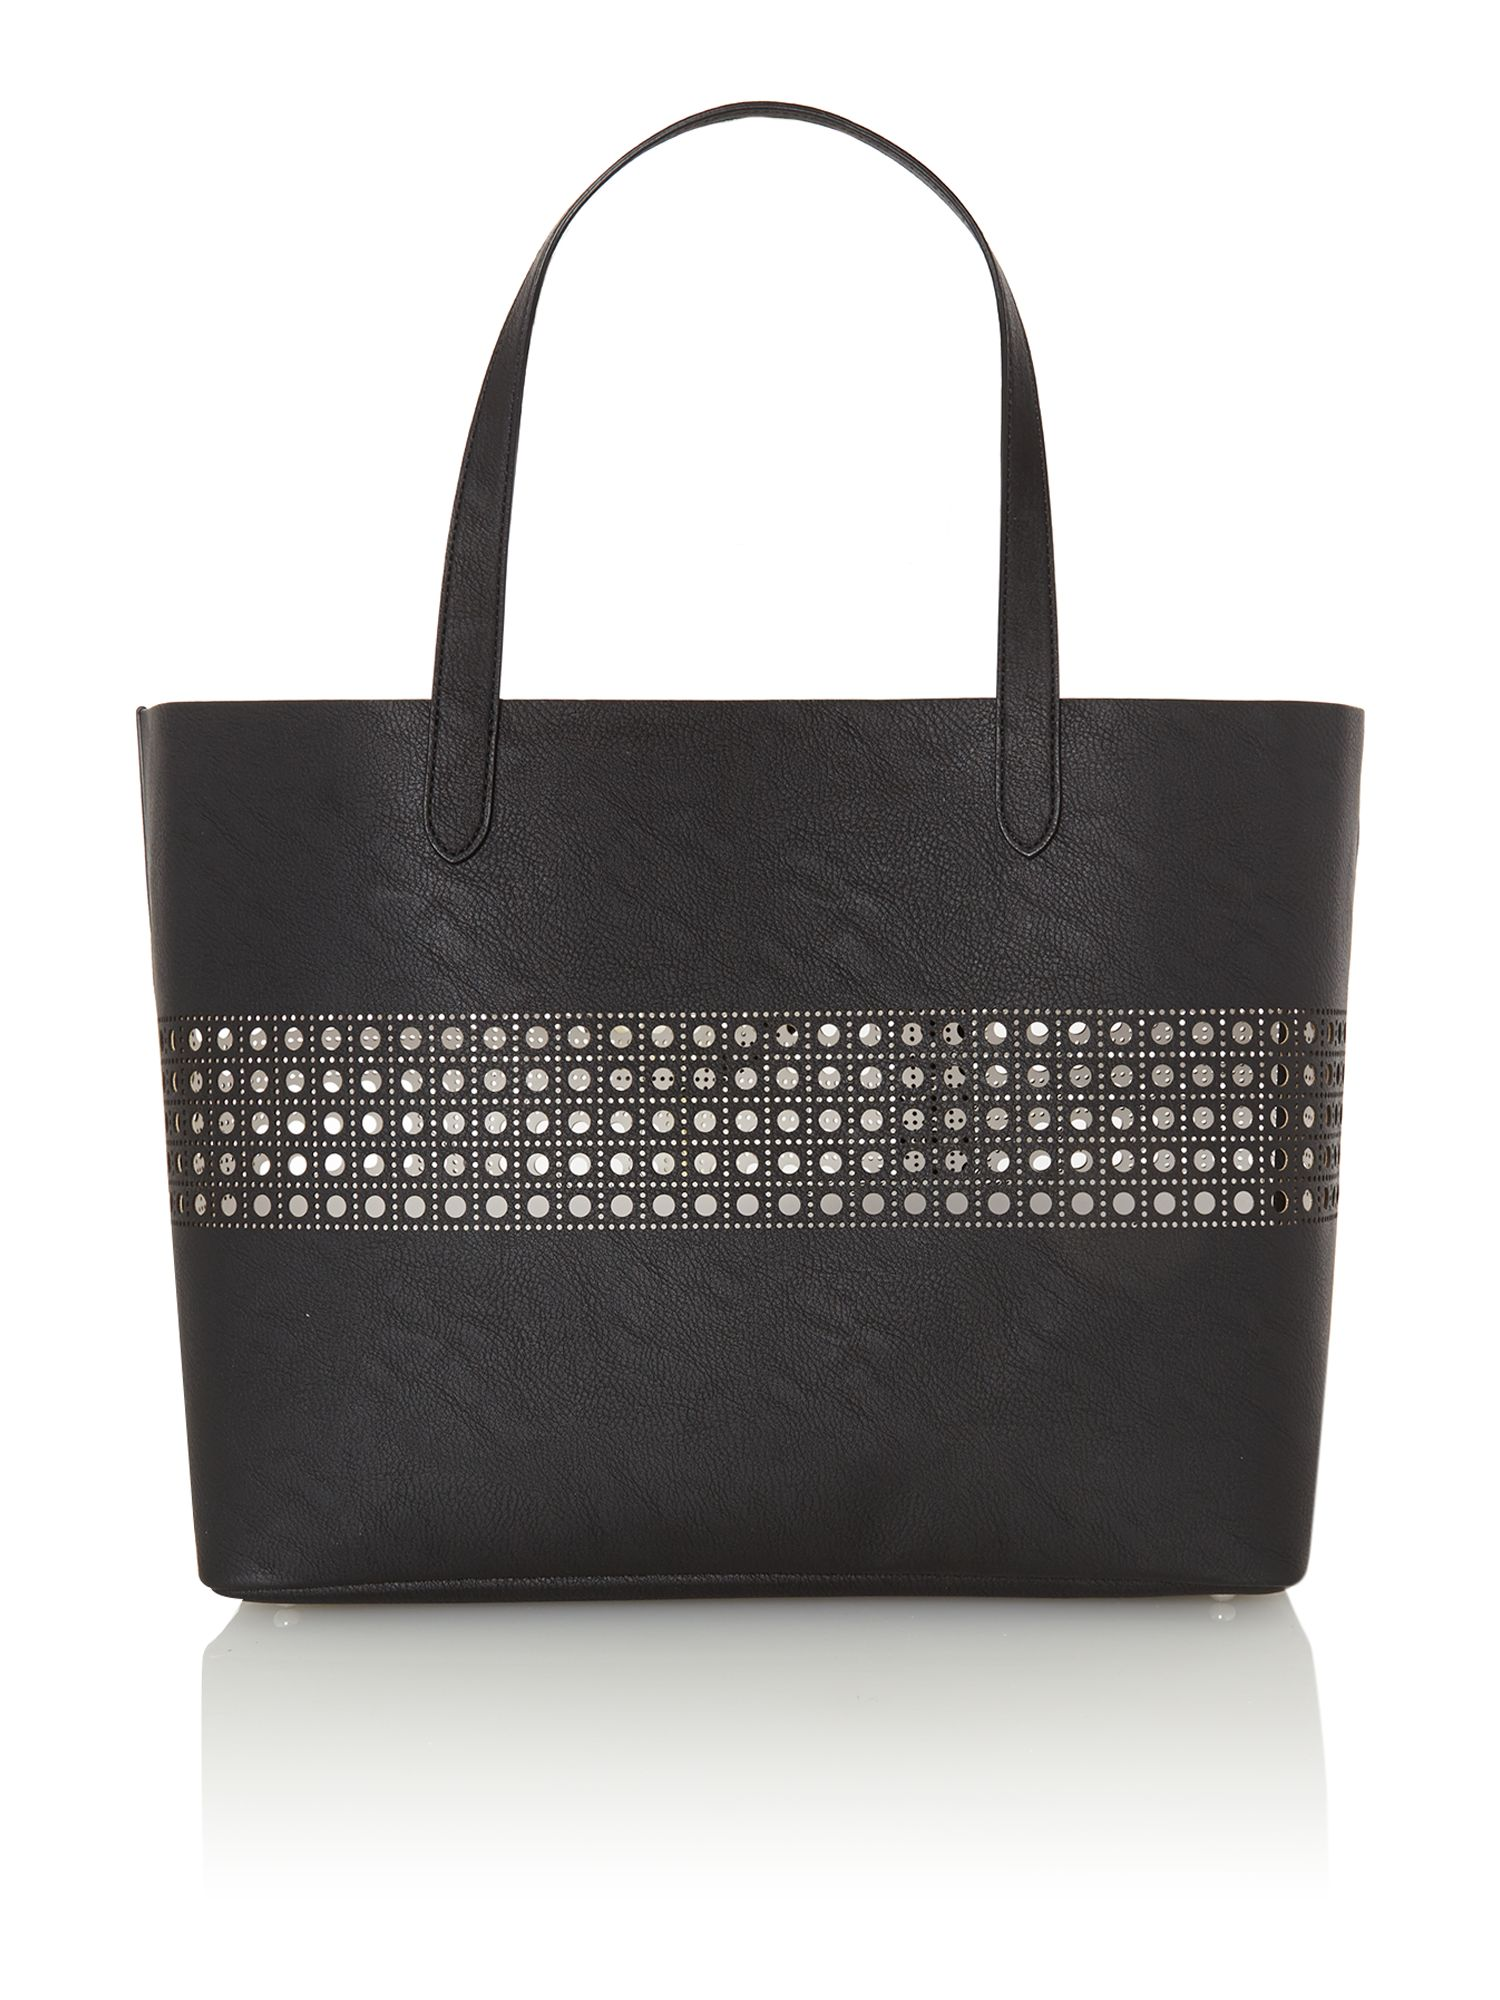 Leighton black large tote bag